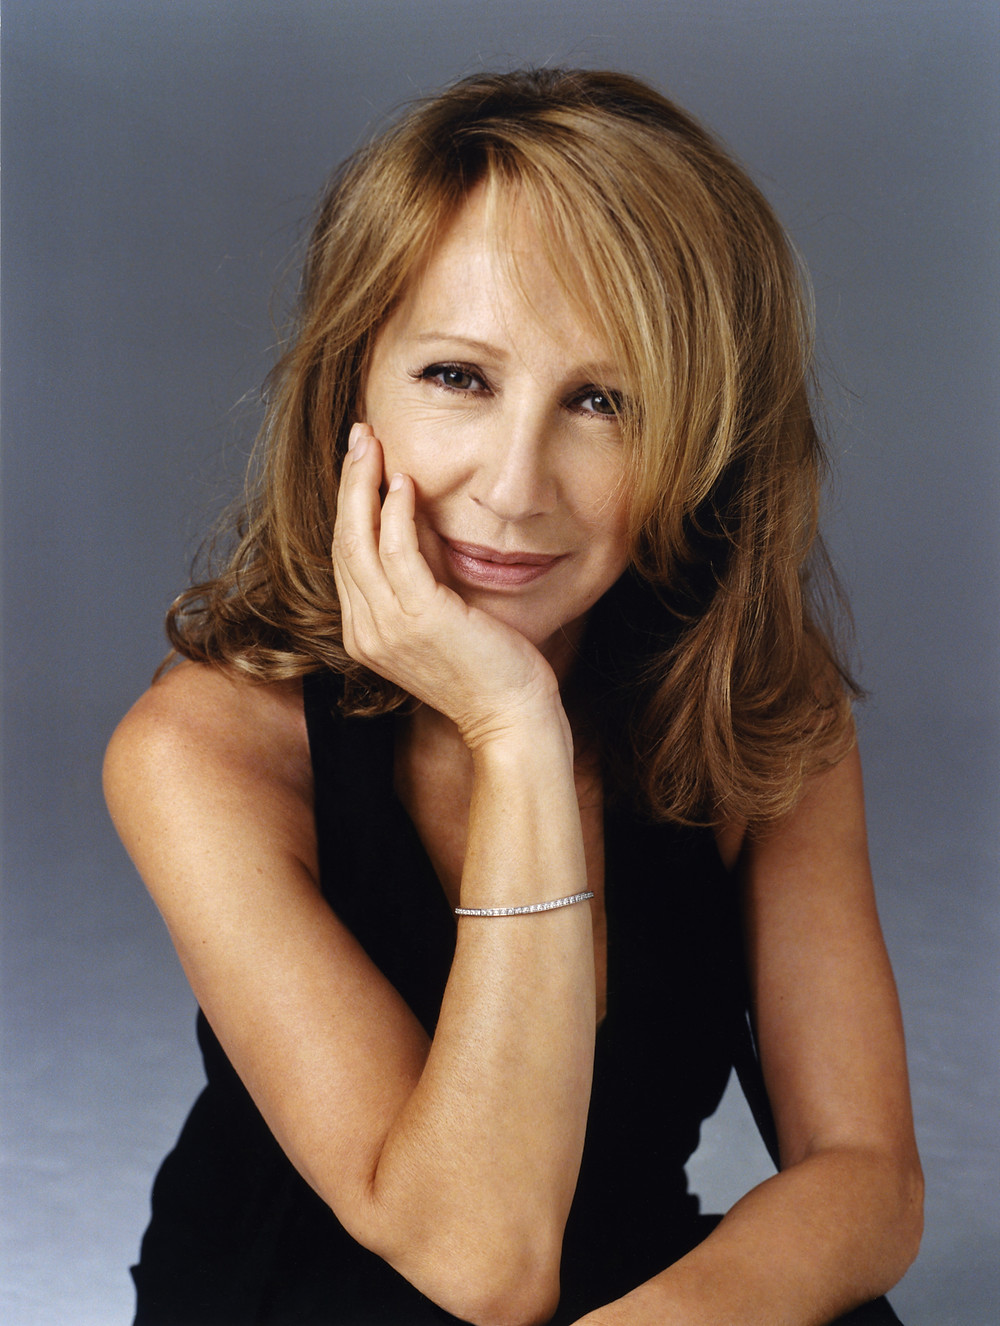 Nathalie Baye - The Culture News